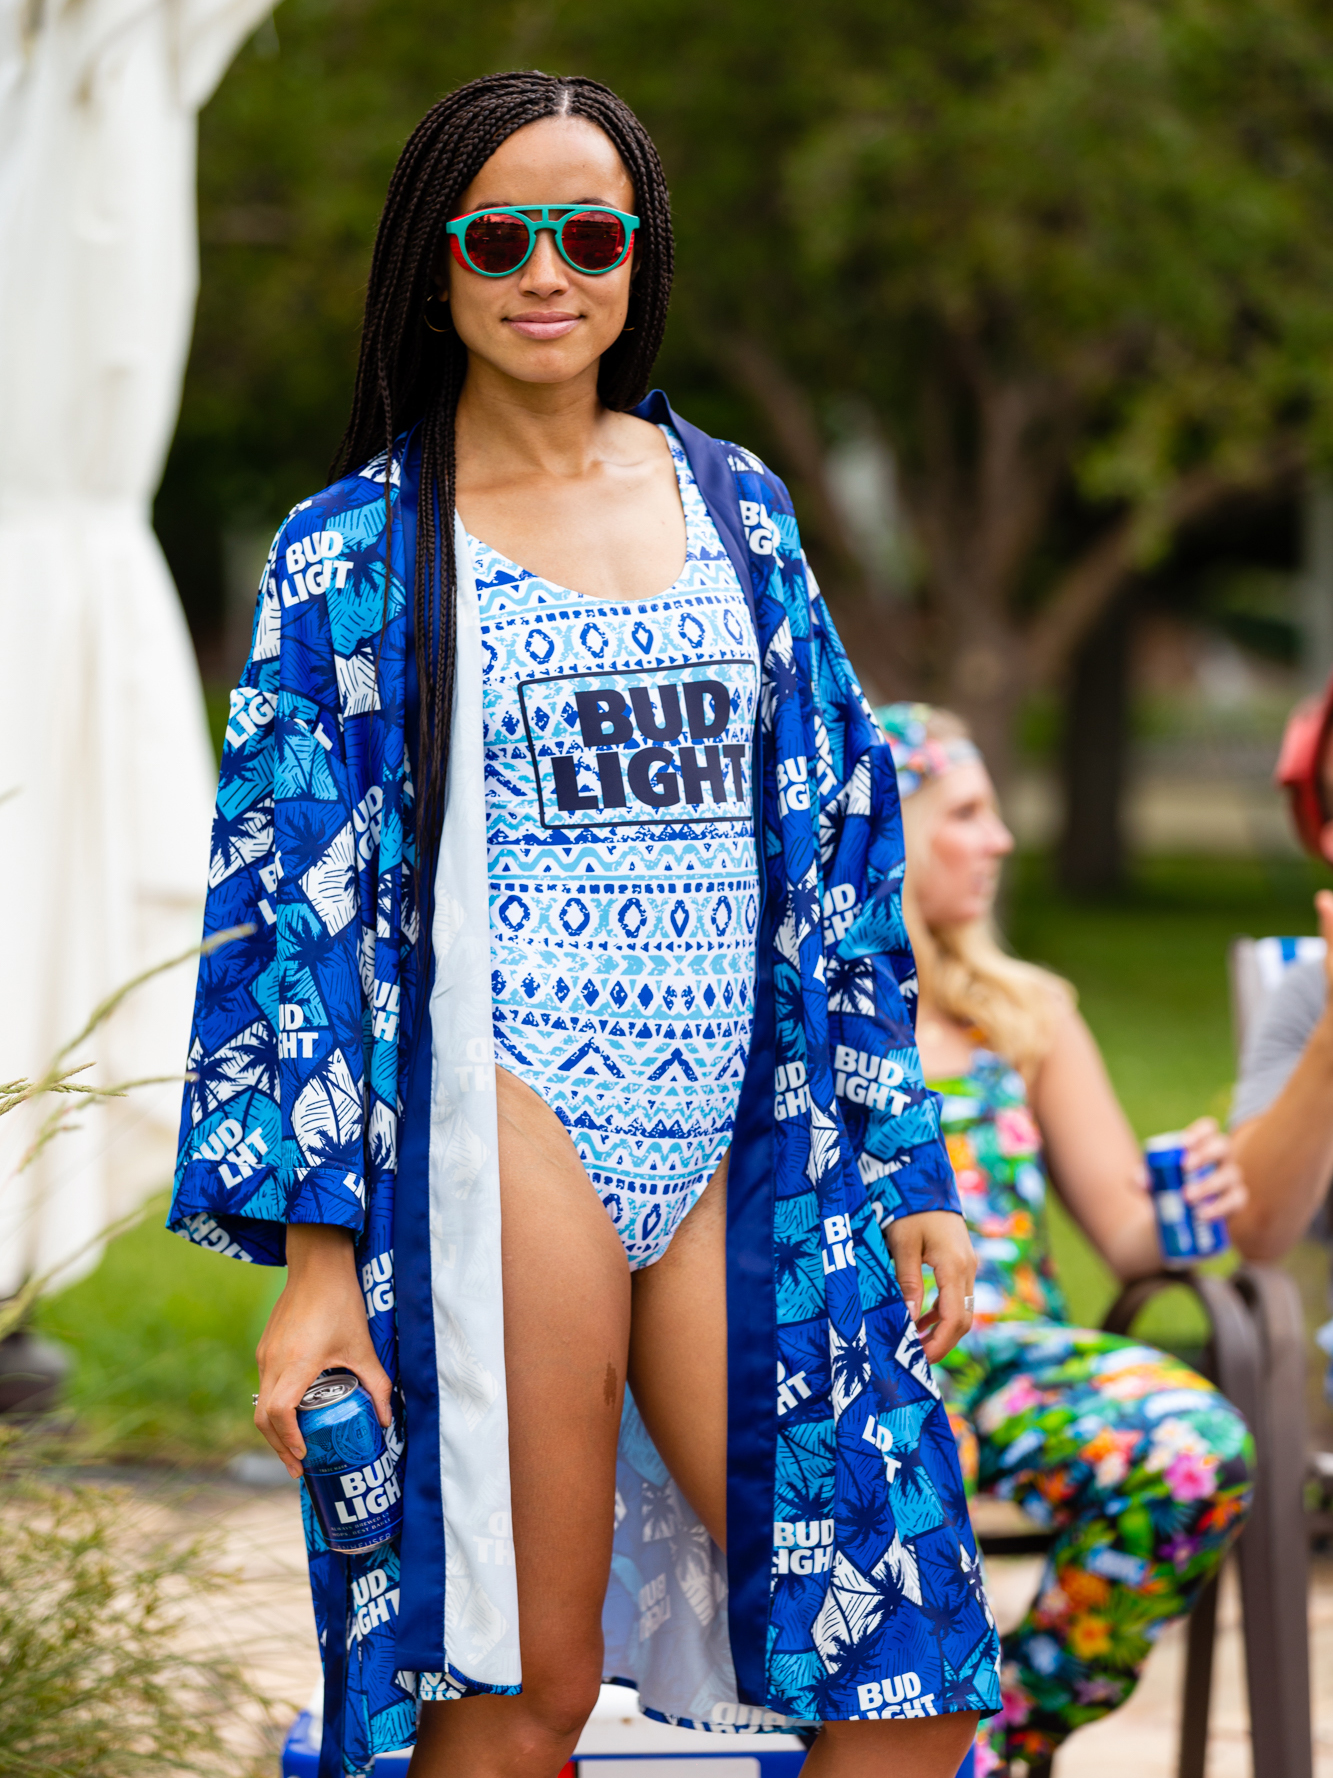 Bud Light's 'Pajameralls' Are Sure to Turn Heads At Your Next Cookout bud-light-kimono-VT-BLOG0719